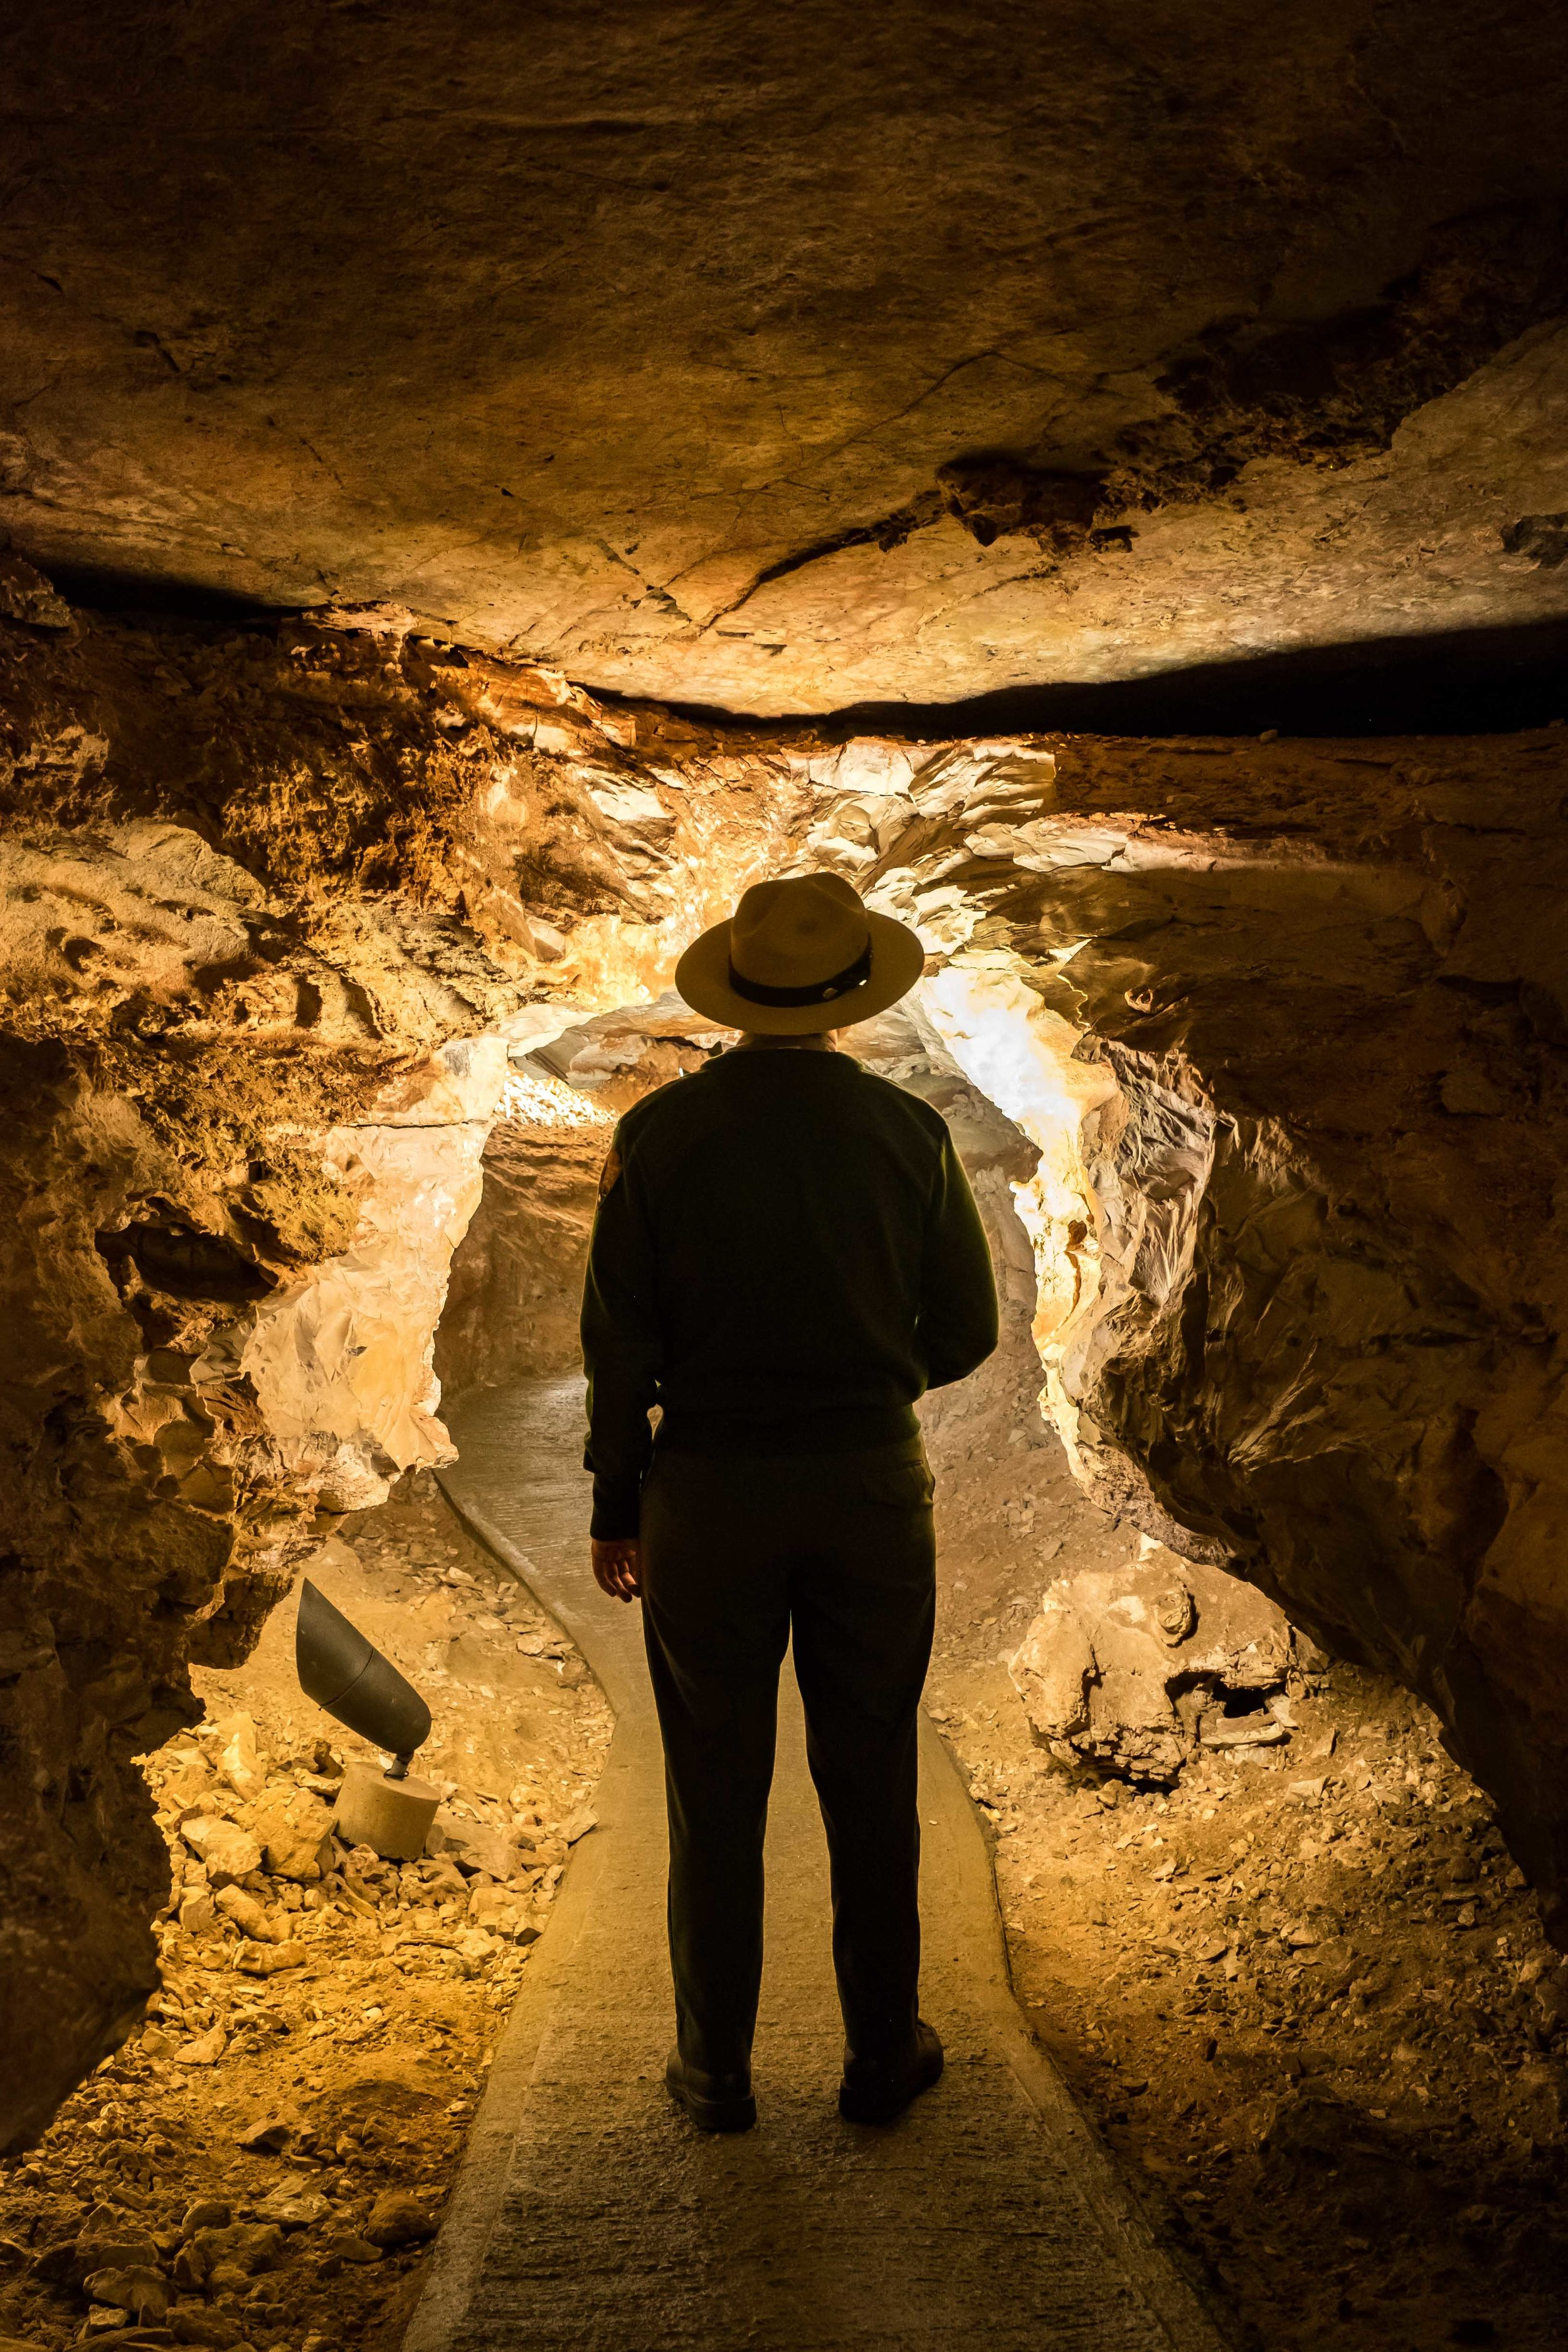 A great ranger-led private tour really allowed us to explore this cave in depth.